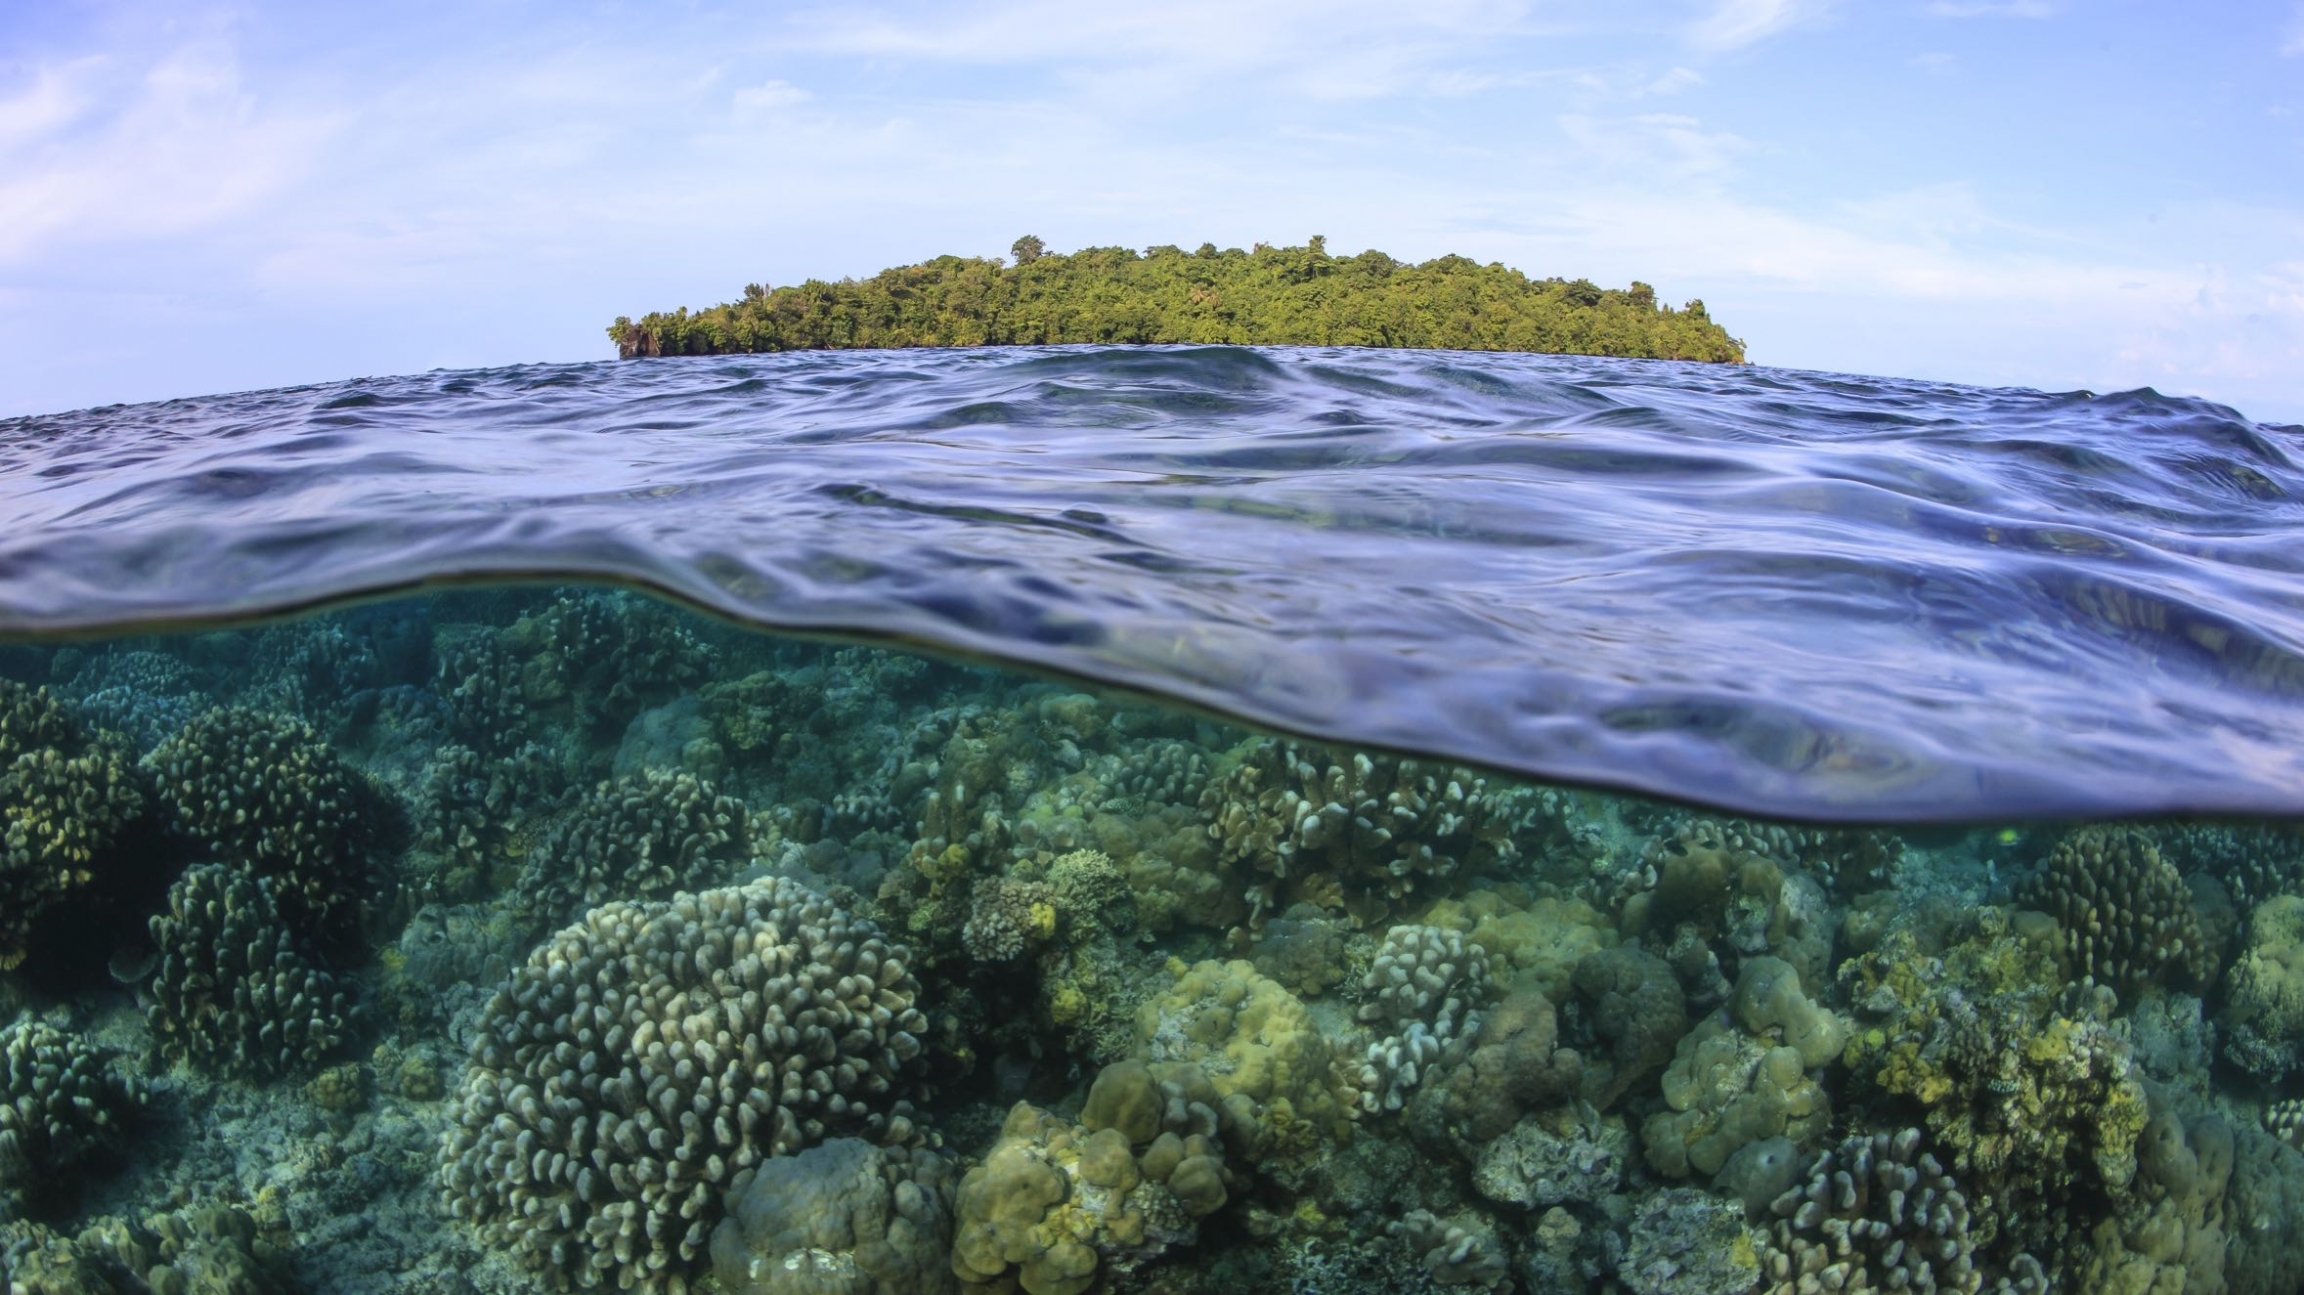 Corals grow in the shallow waters around a small island in Kimbe Bay, Papua New Guinea.